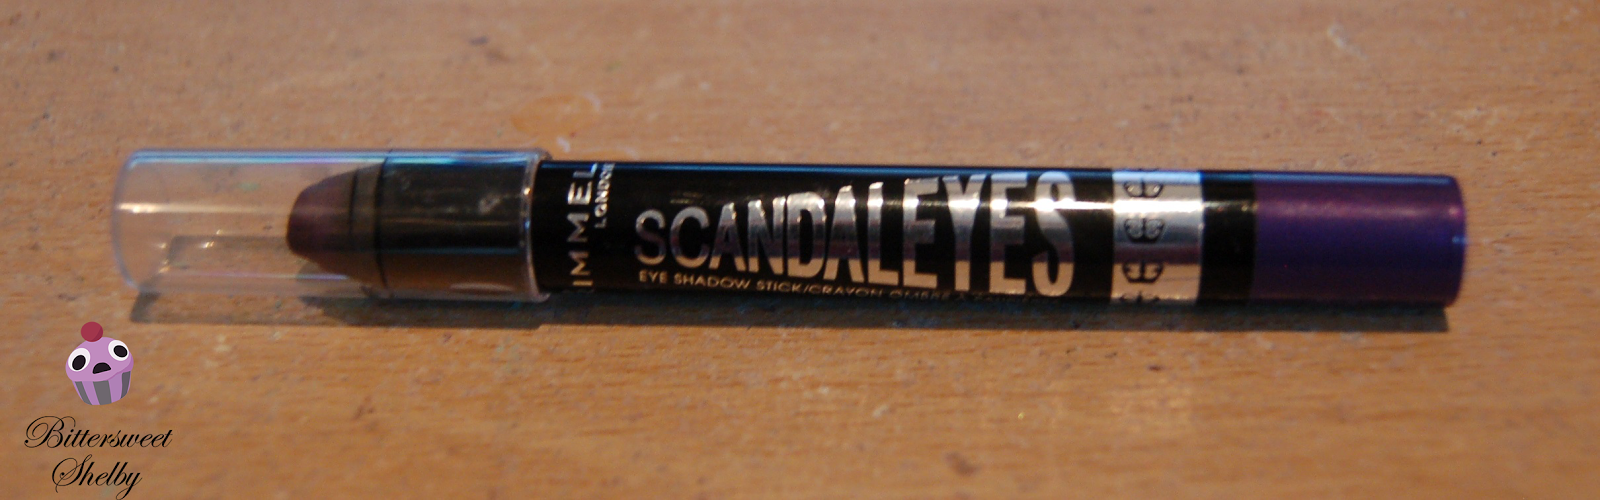 Rimmel Scandaleyes Eye Shadow Stick - Review / Swatches